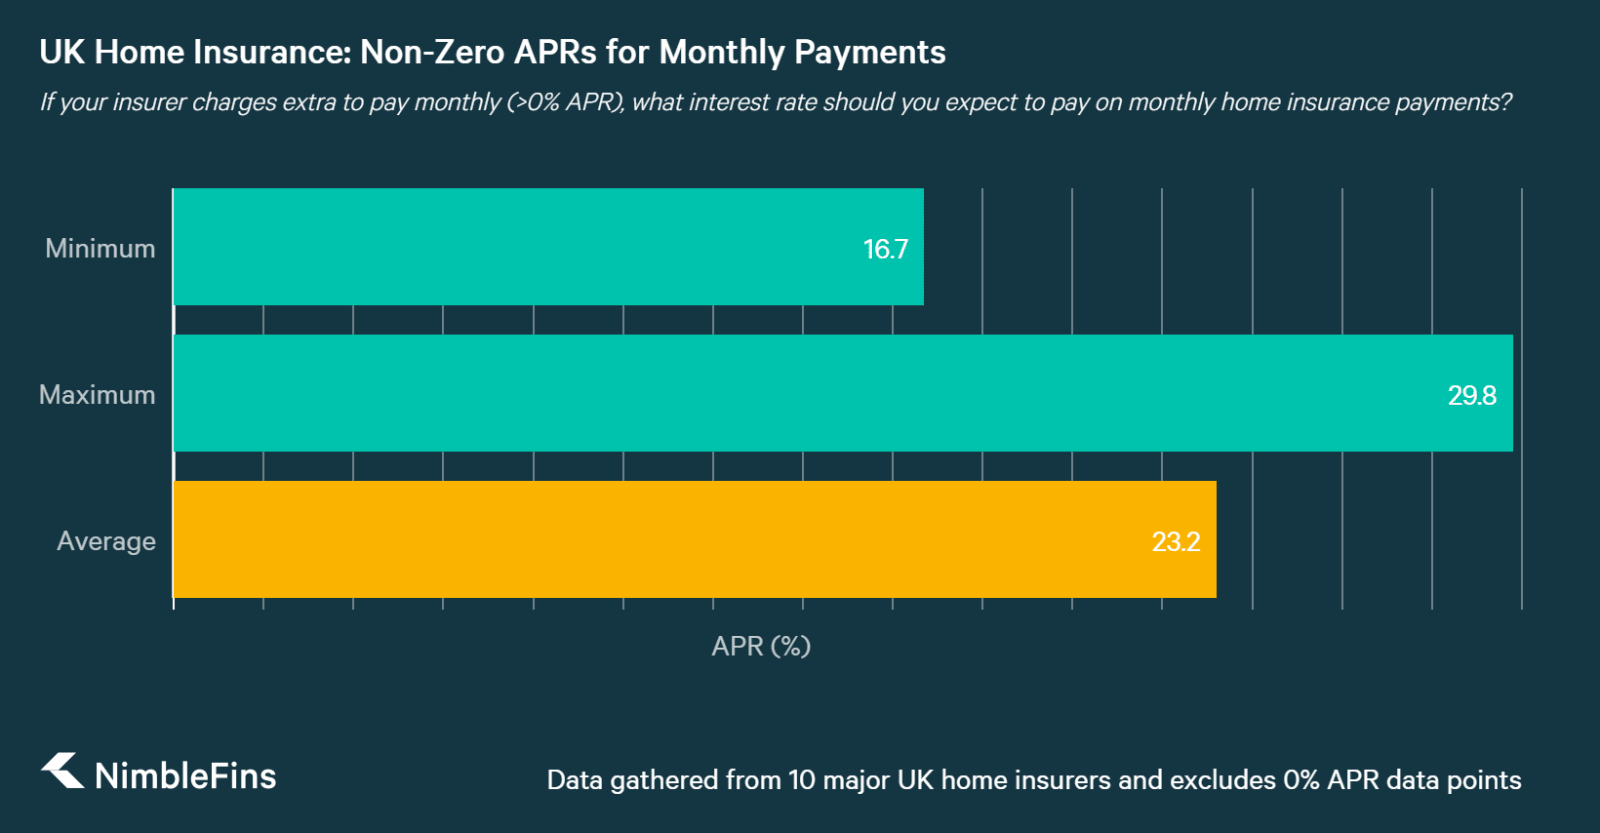 APR on home insurance monthly payments